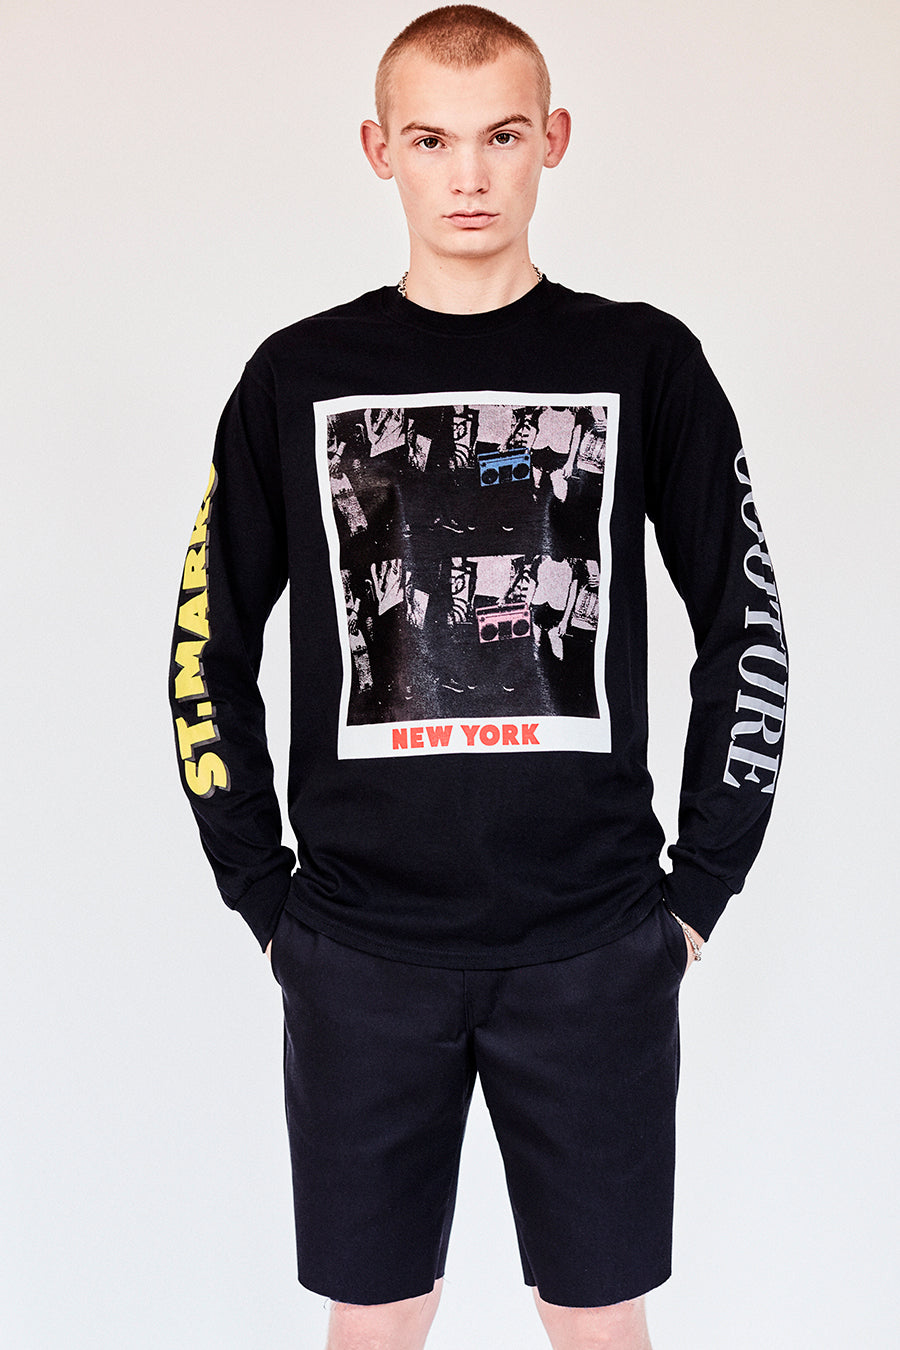 Brand New from New York City: Stmarksnewyork.com. Shop The St. Marks boombox black long sleeve T-shirt: featuring our image from St Marks Place, and the St. Marks Couture New York logo on the back.  Hand silkscreen printed in New York with love.